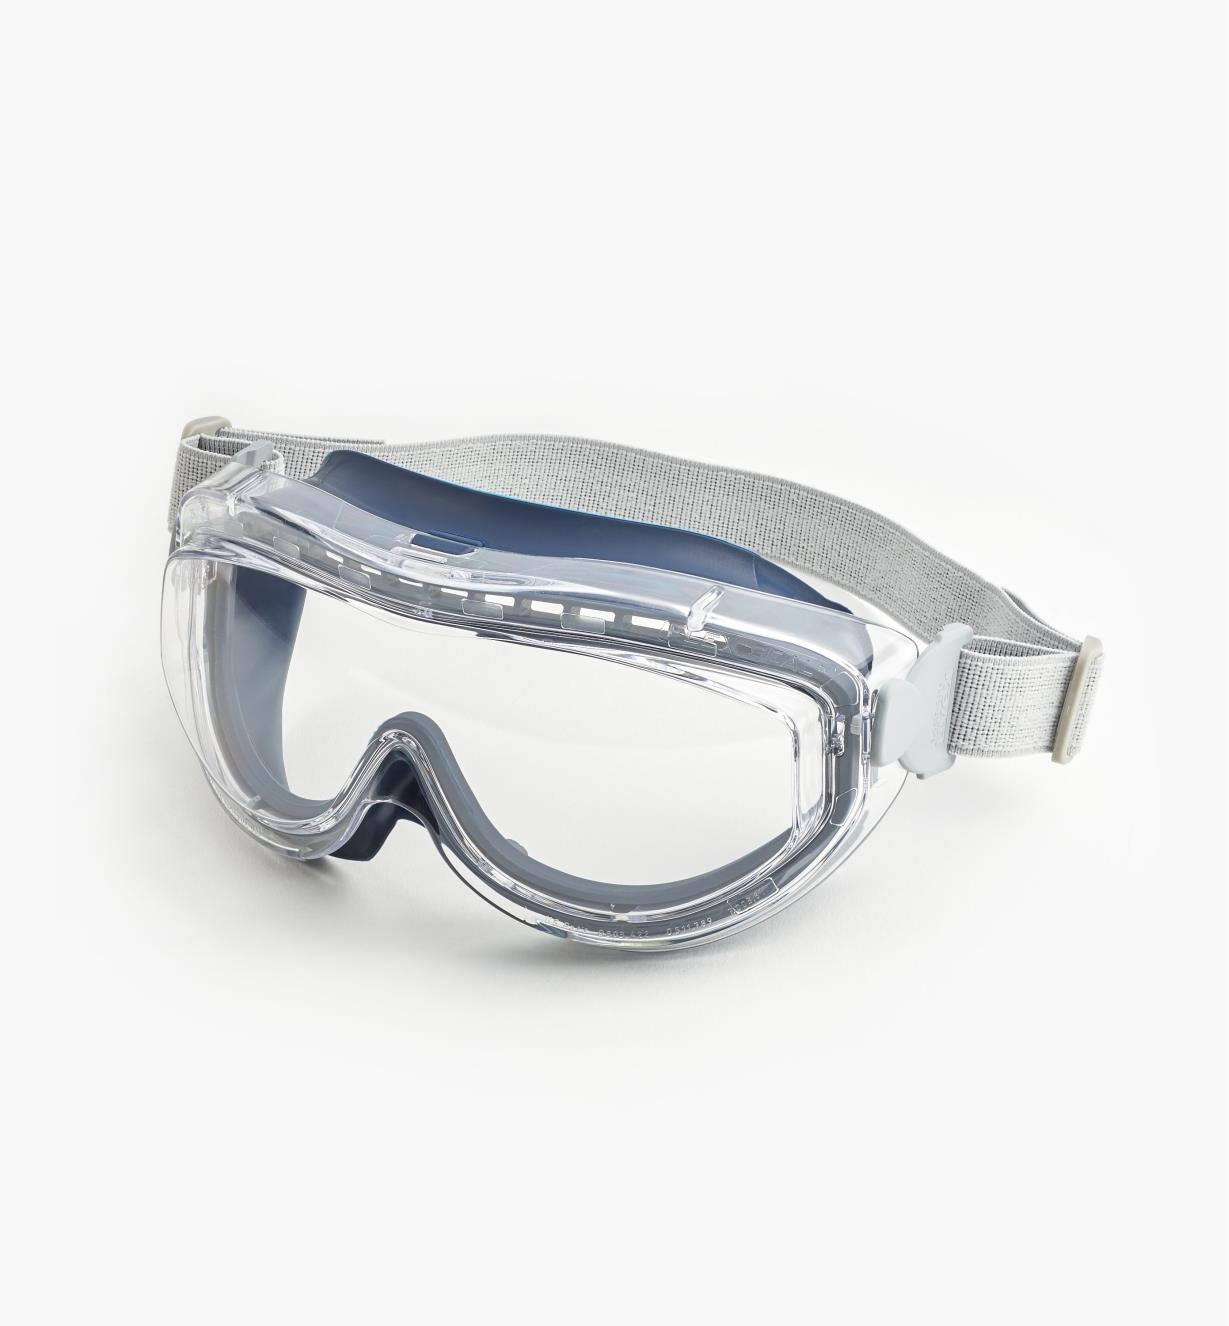 22R7245 - Chemical Splash Goggles